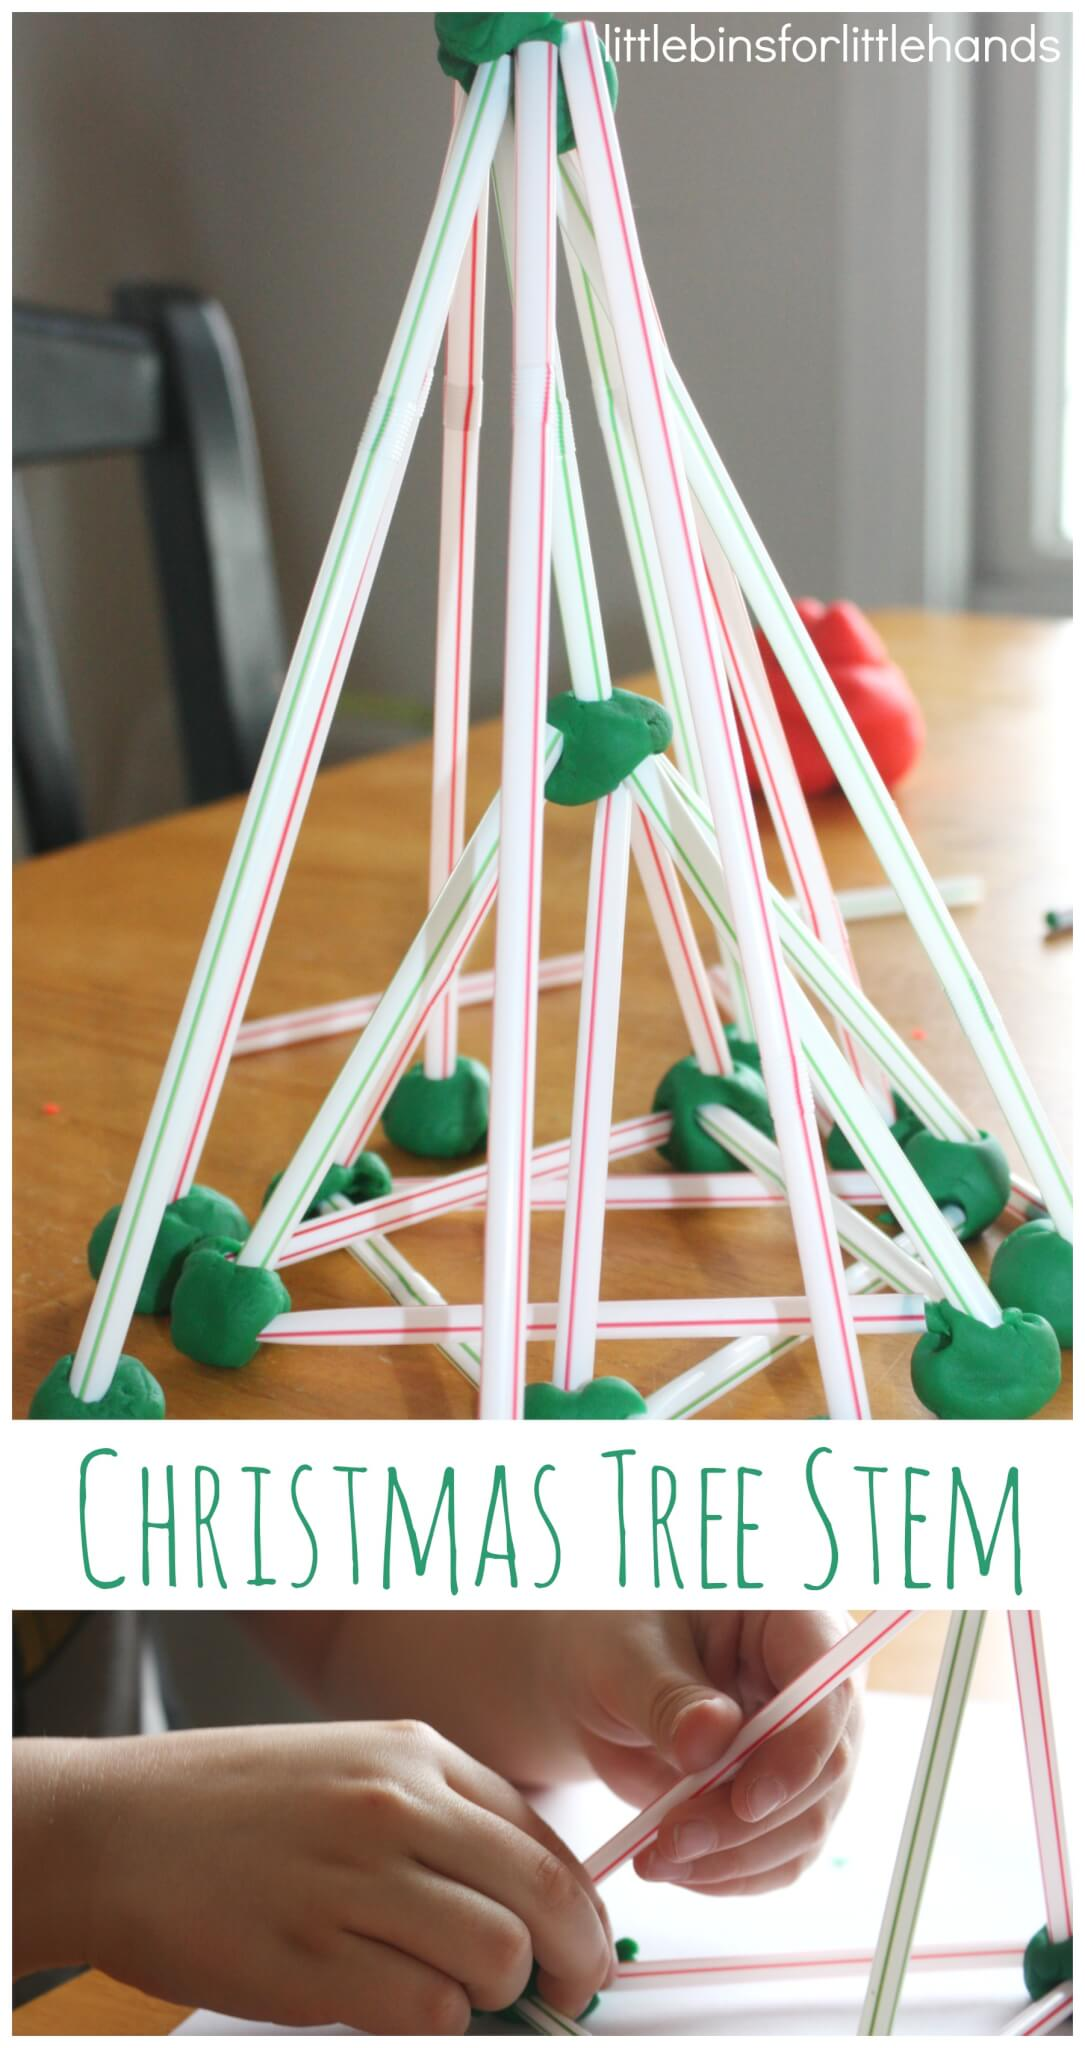 Ten Winter Holiday Makerspace Ideas The Tinkering Librarian